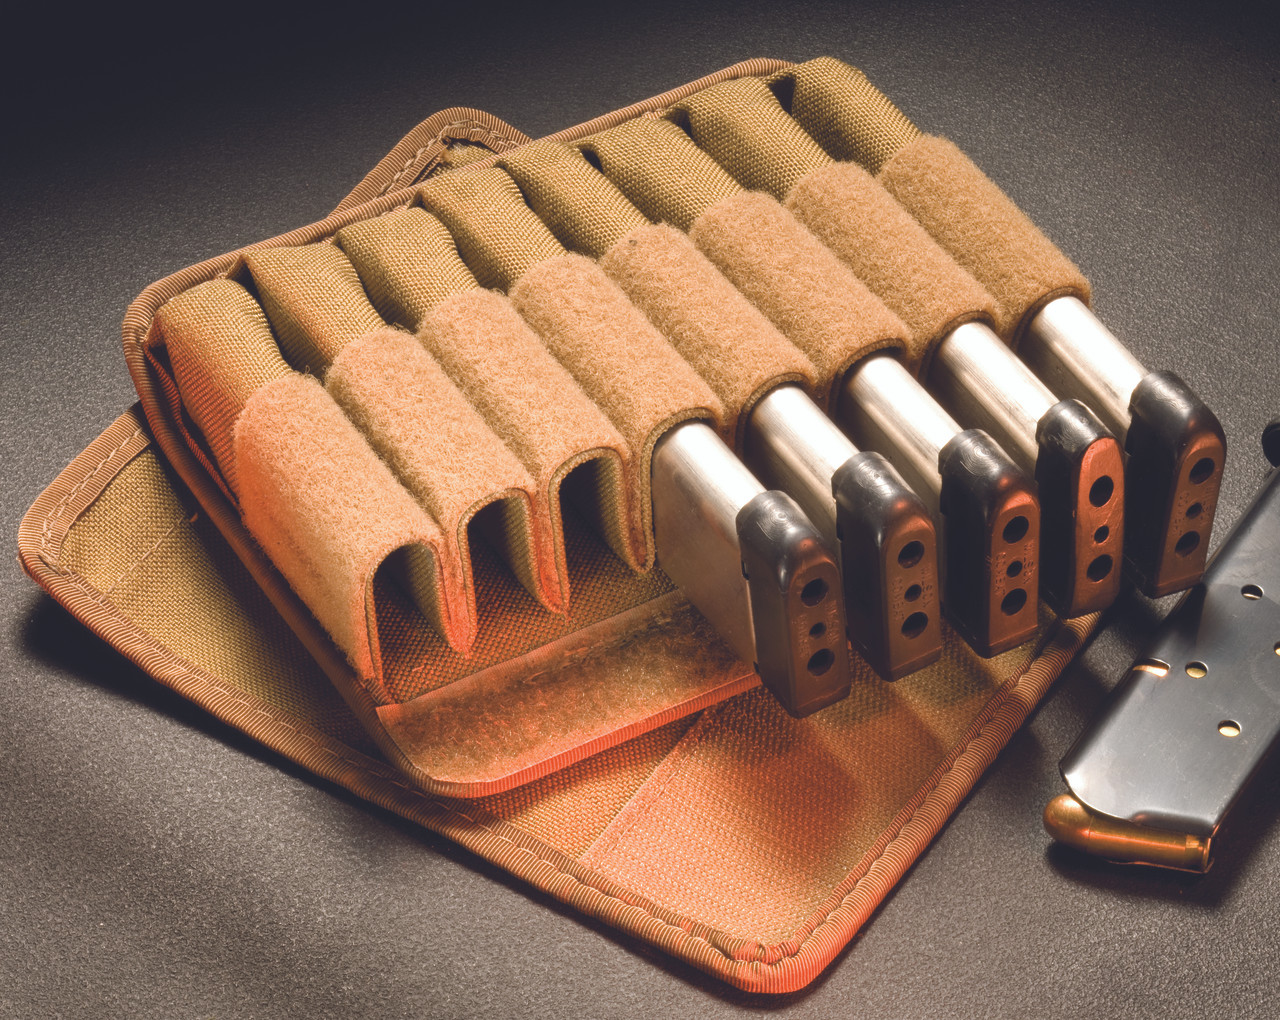 7068-CBV-1 TUFF Products Original 8 In-Line Mag Pouch,Coyote Brown,.45ACP